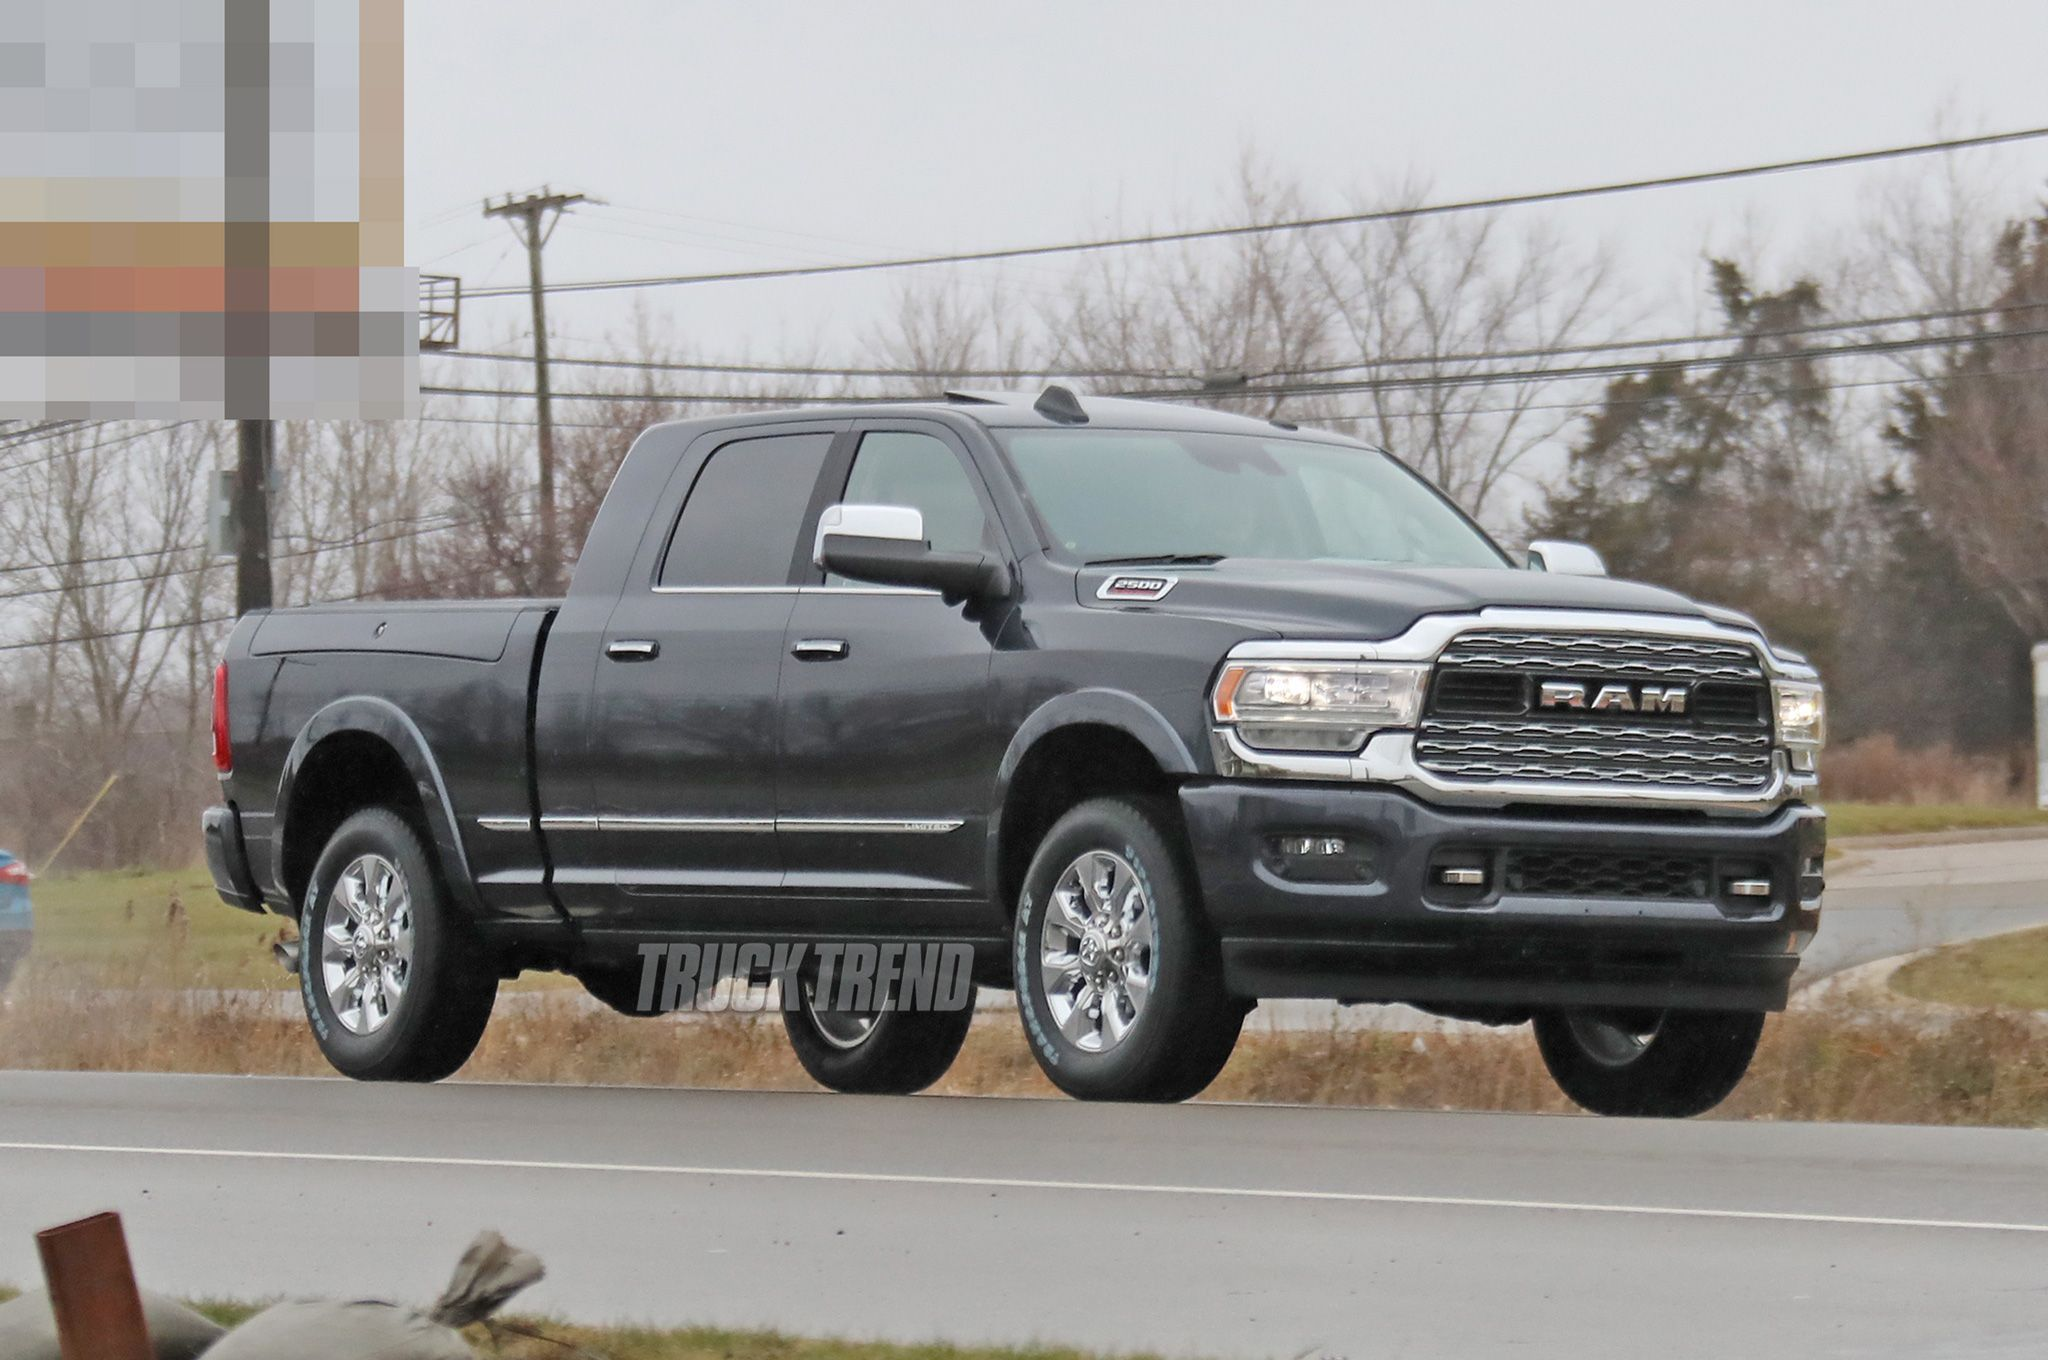 2020 Ram 2500 2020 Ram 2500 2020 Ram 2500 Black Edition 2020 Ram 2500 Cummins 2020 Ram 2500 Diesel 2 Dodge Mega Cab Dodge Trucks For Sale Ram 2500 Diesel